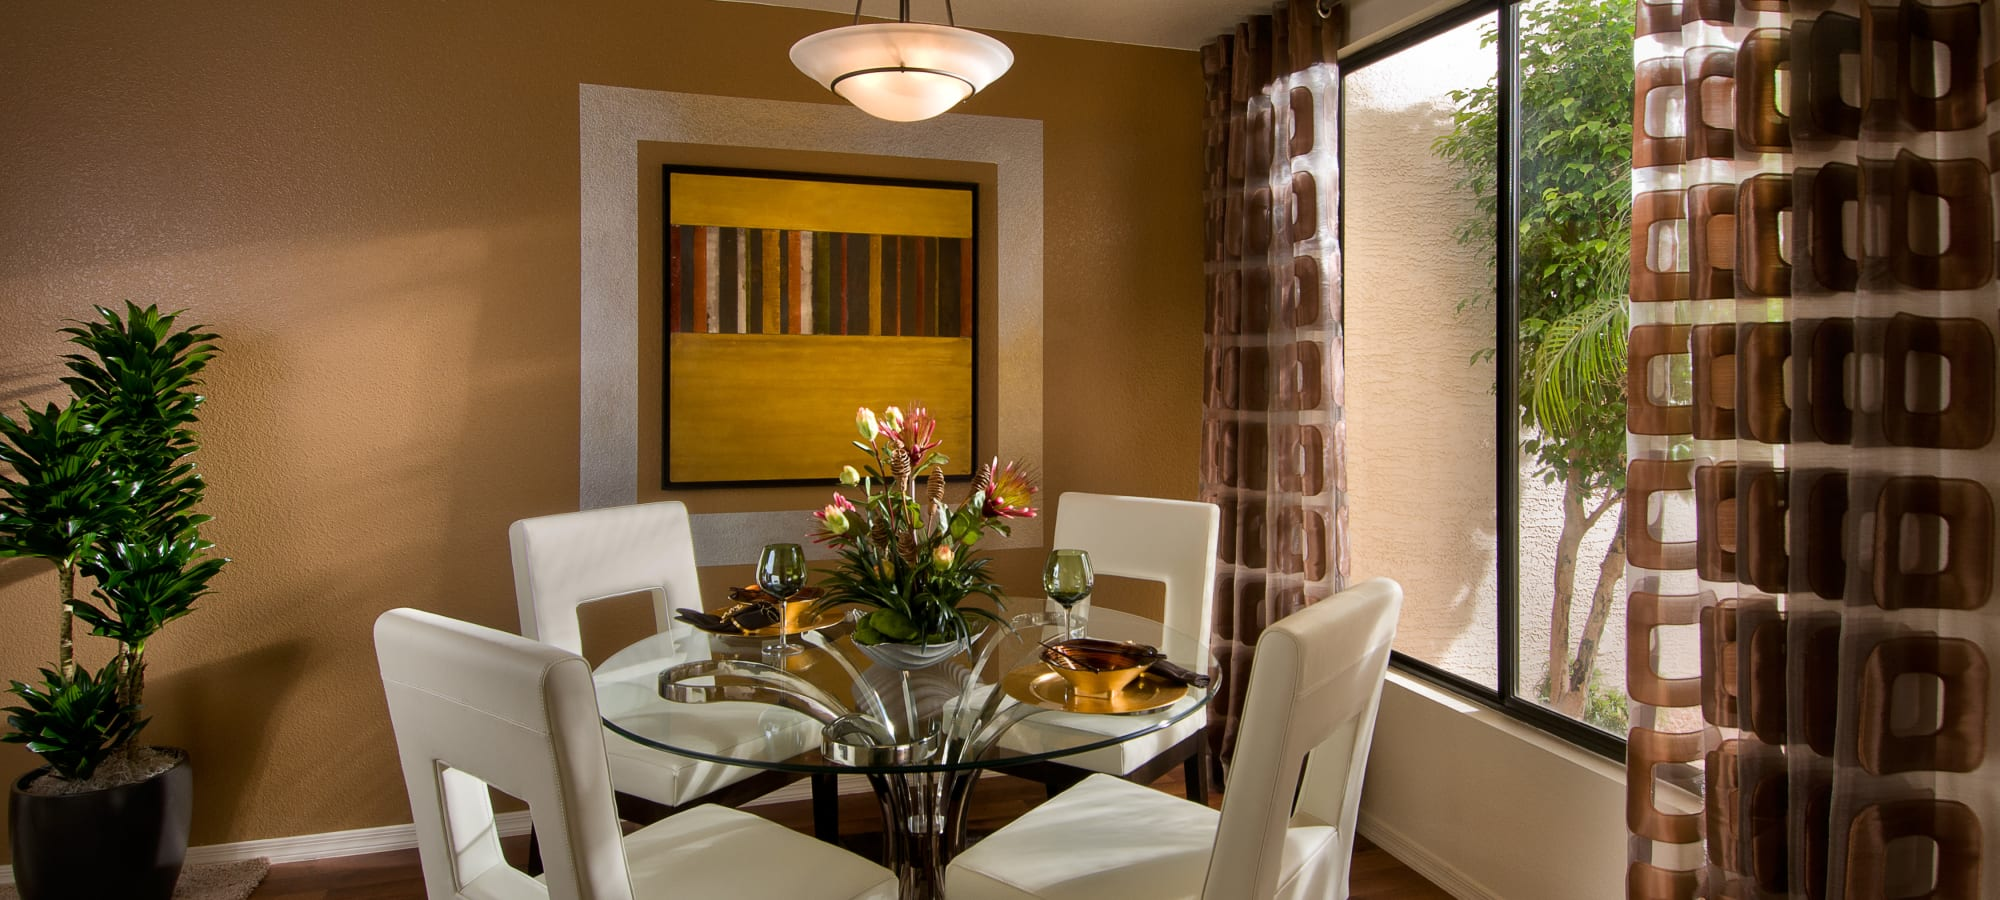 Dining nook with a view outside in a model home at San Palmilla in Tempe, Arizona